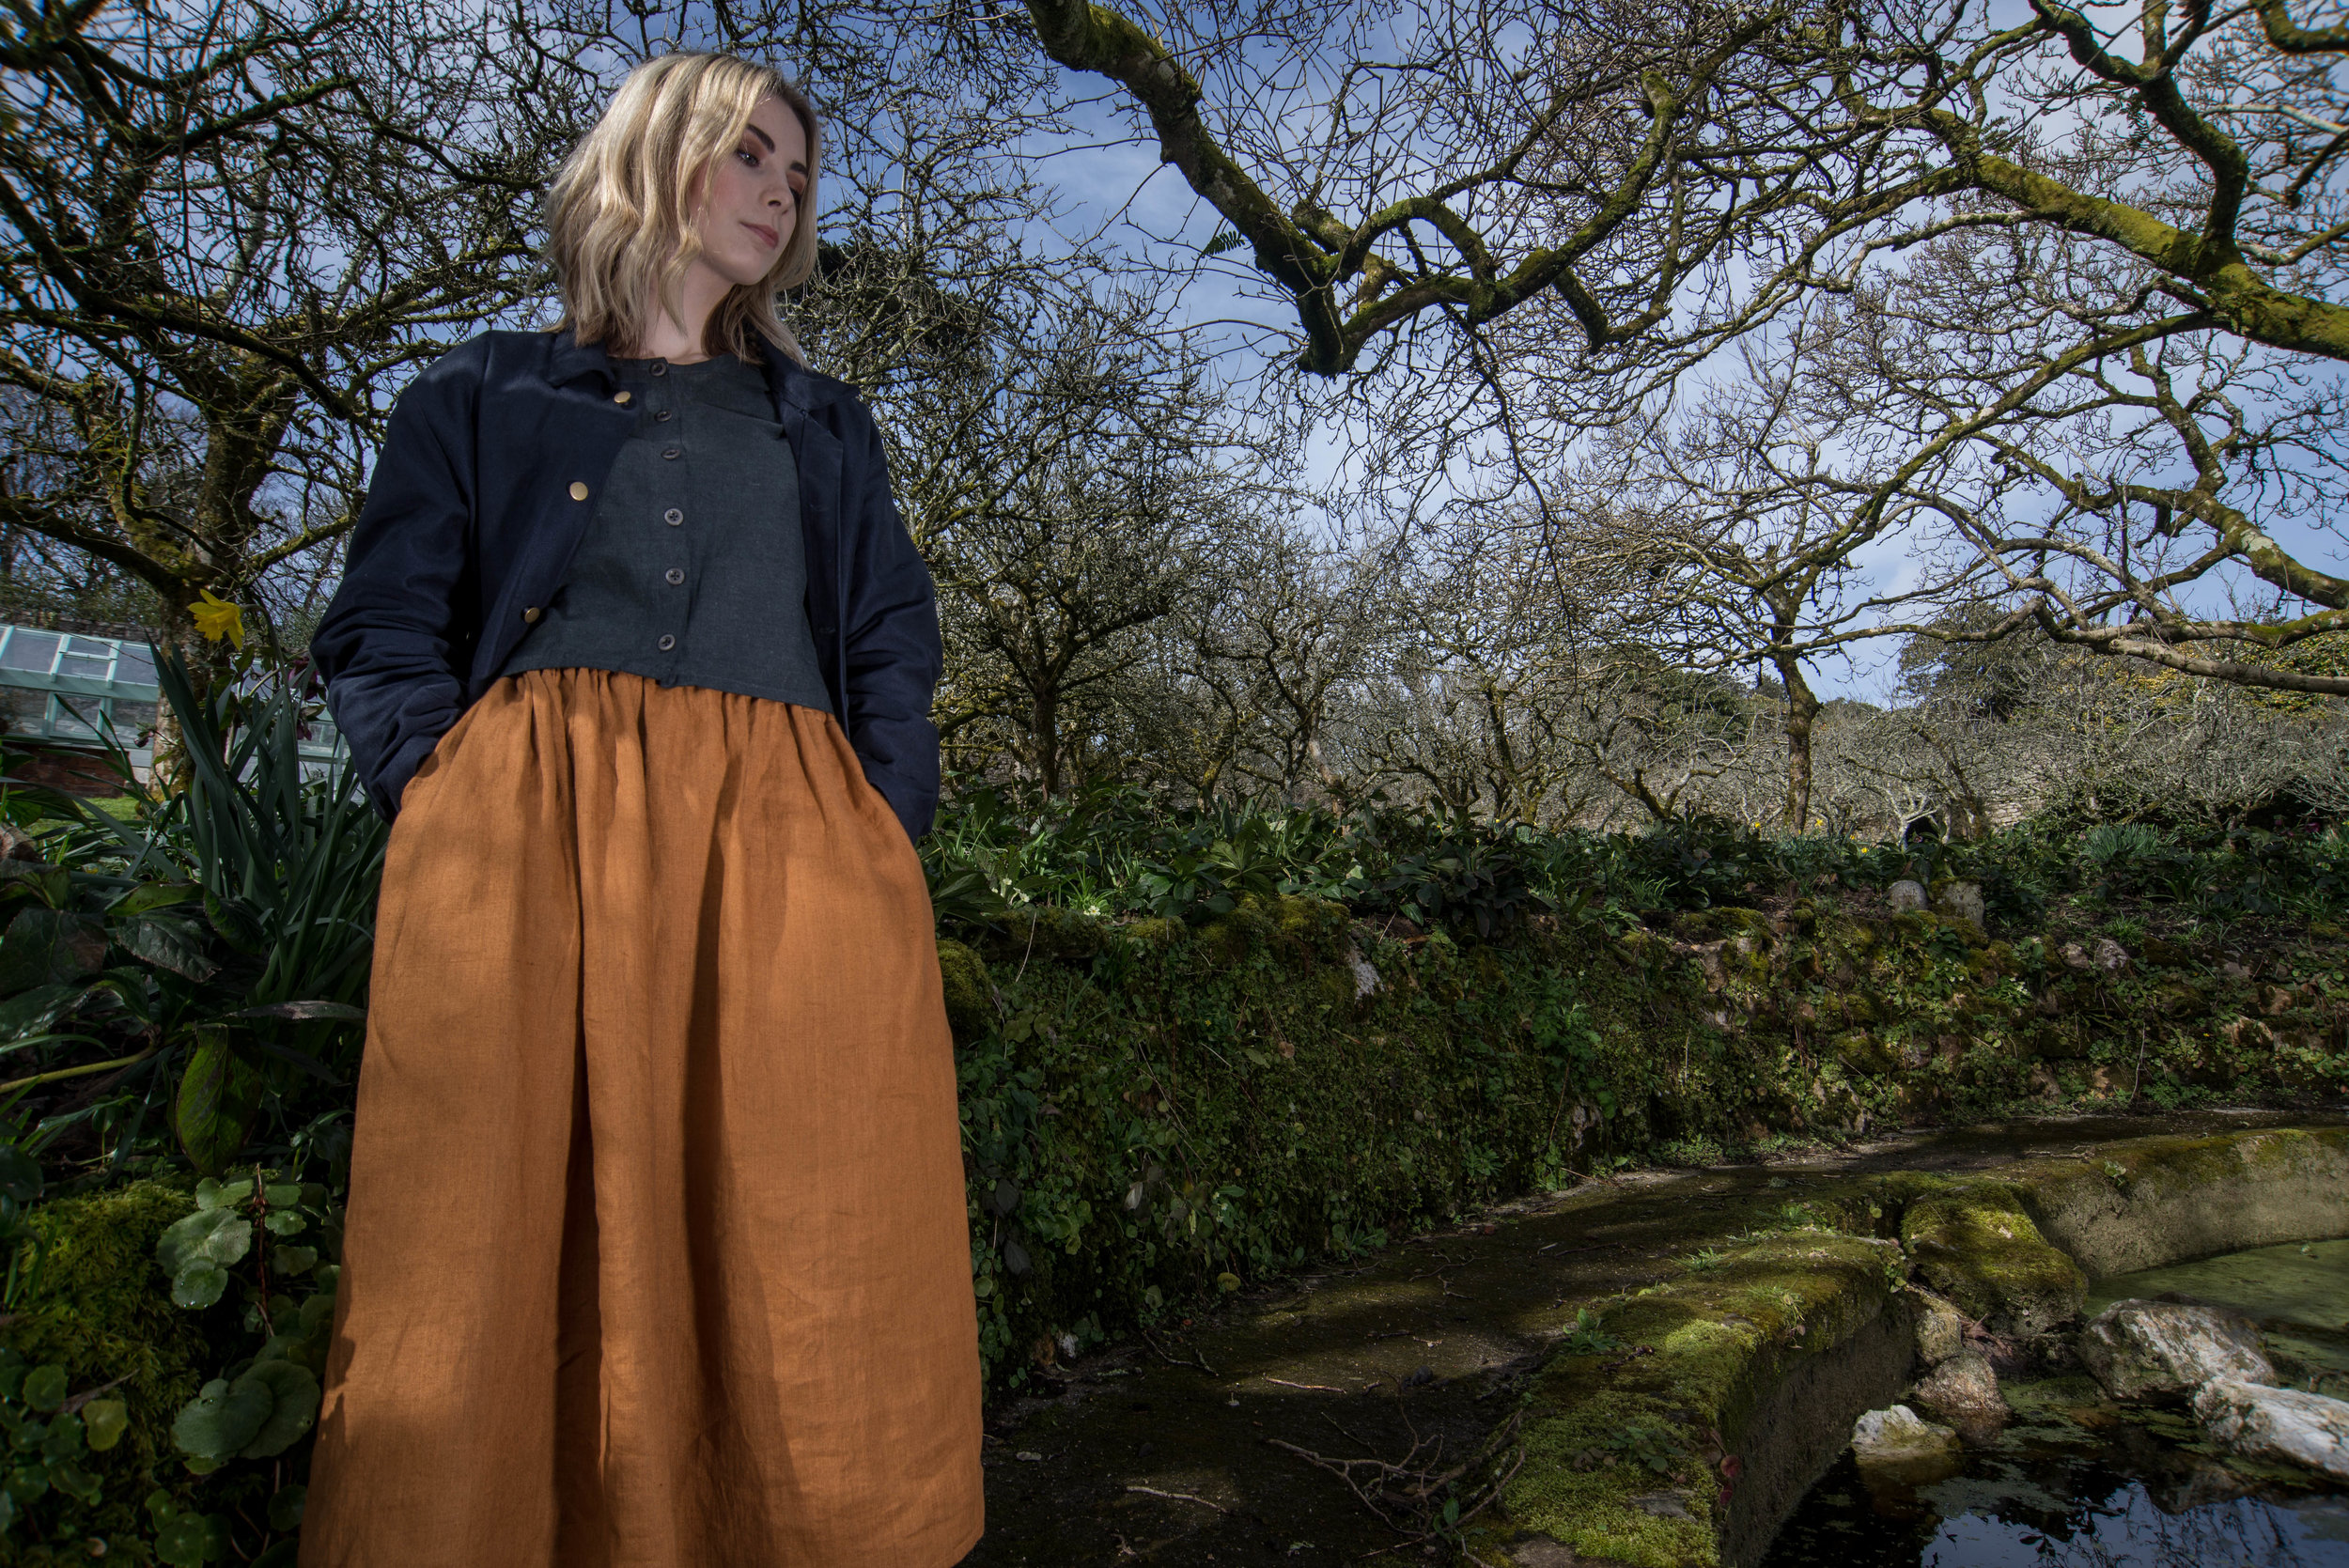 Rosie wearing the ATHENA TOP in charcoal with the ITHACA SKIRT in ochre and the WORKER'S JACKET in navy.